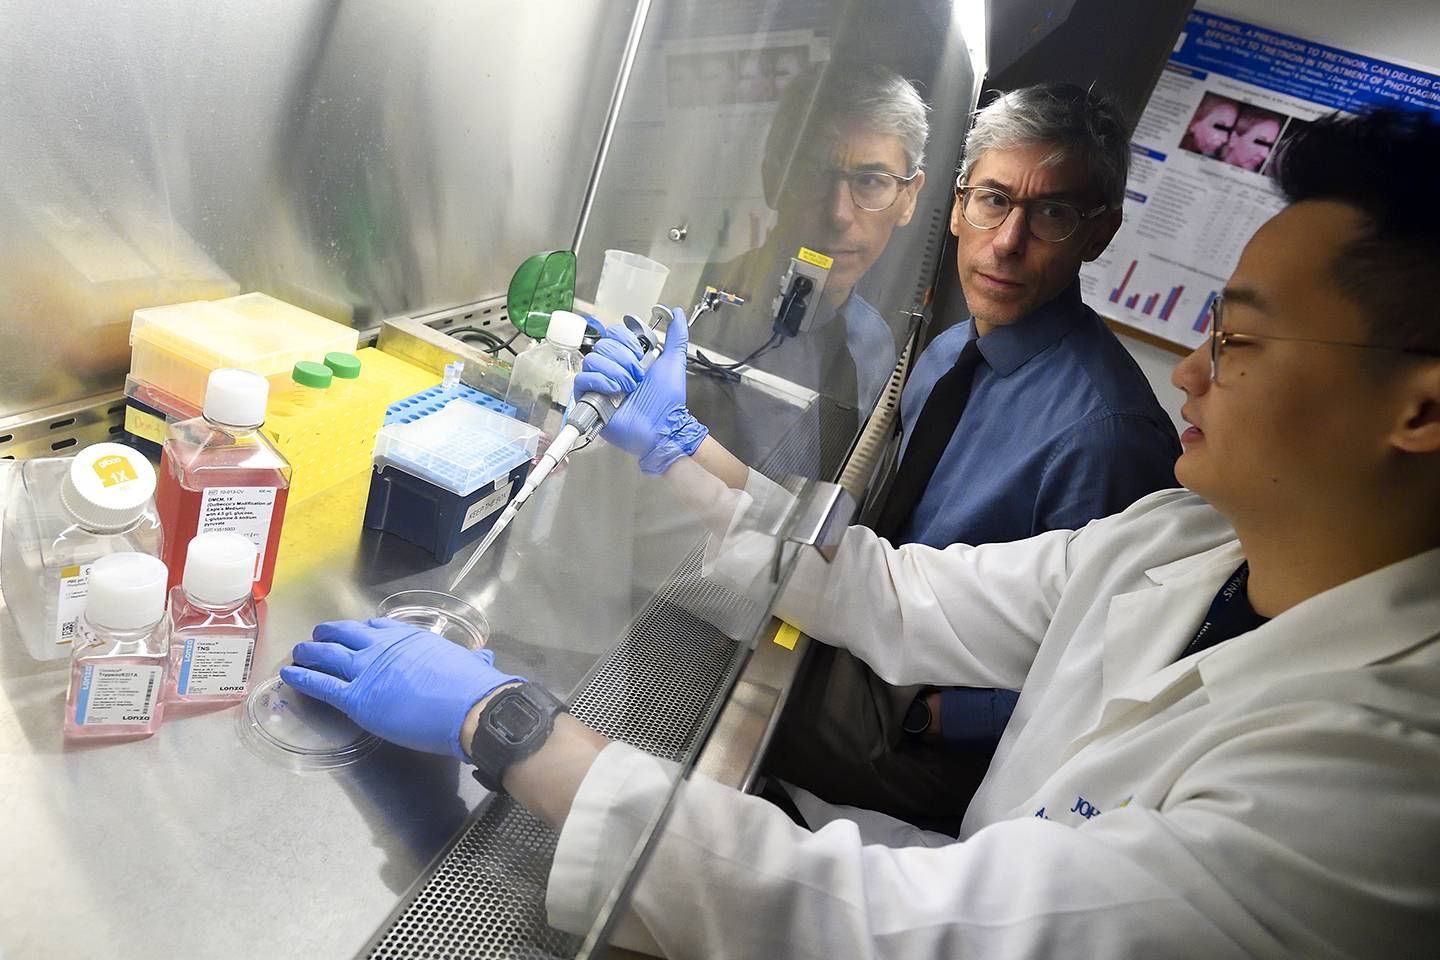 Luis Garza and a researcher work in the lab